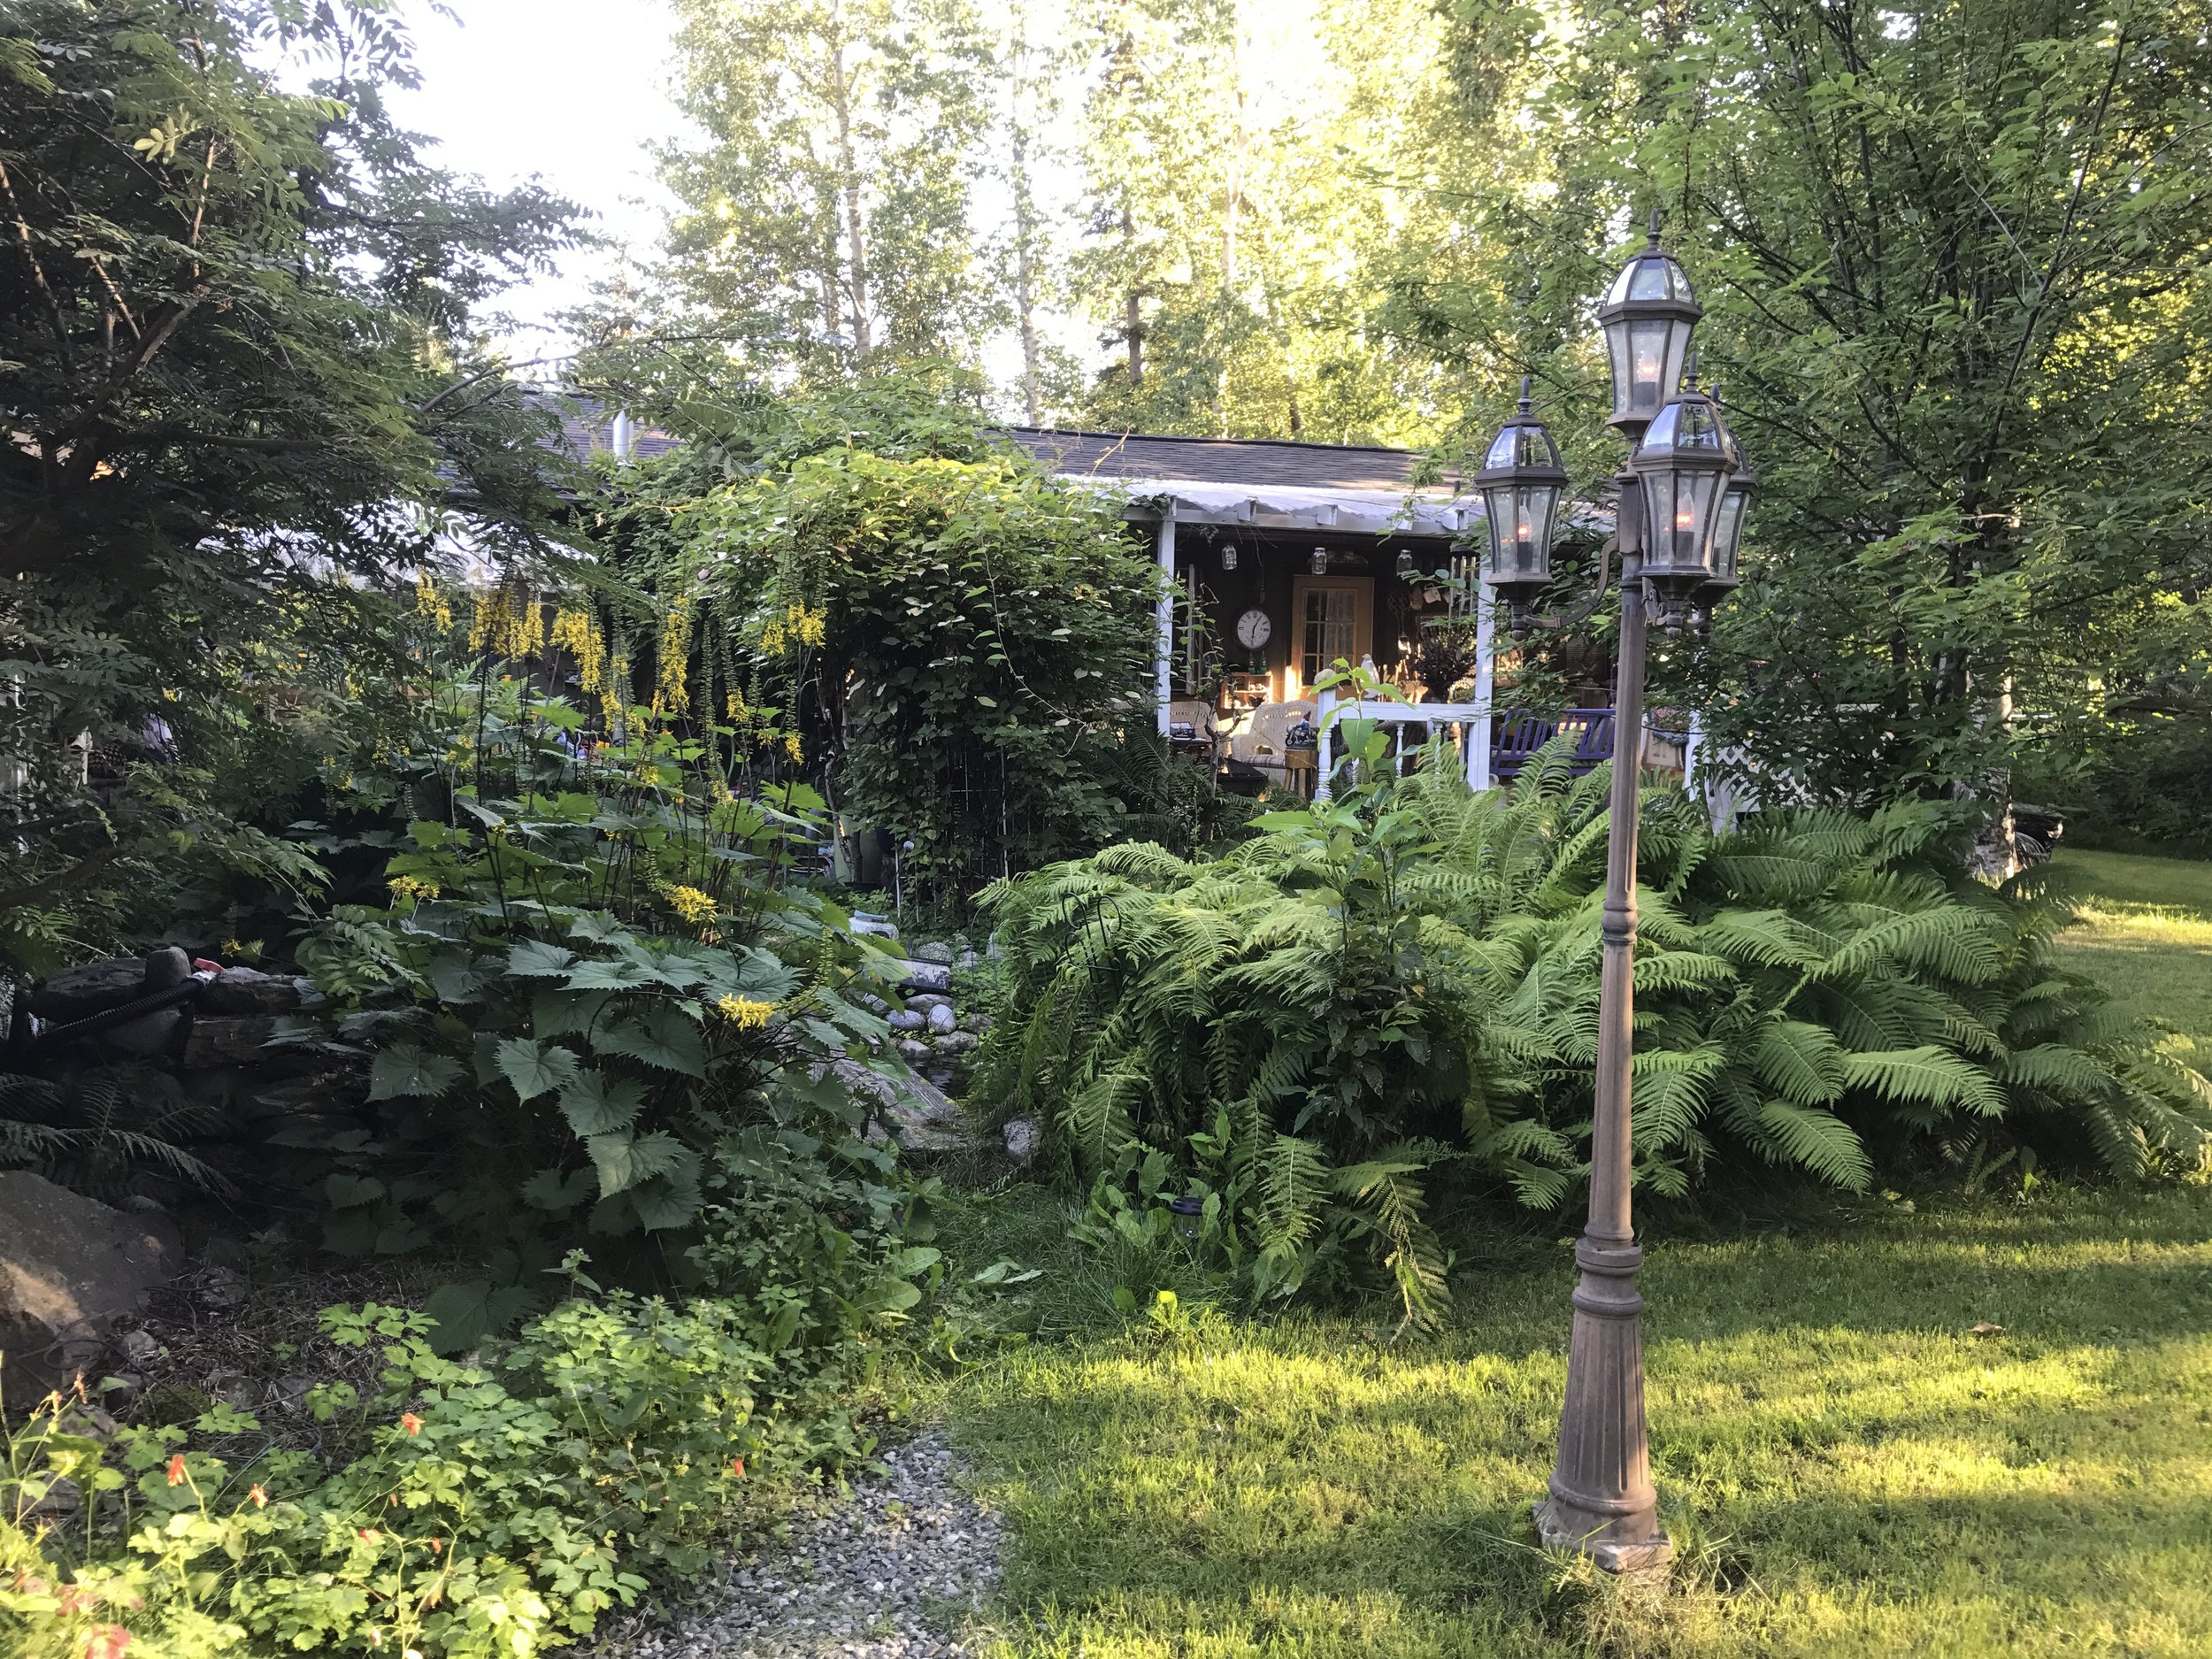 The backyard of their home in Wasilla is a magnificent garden.